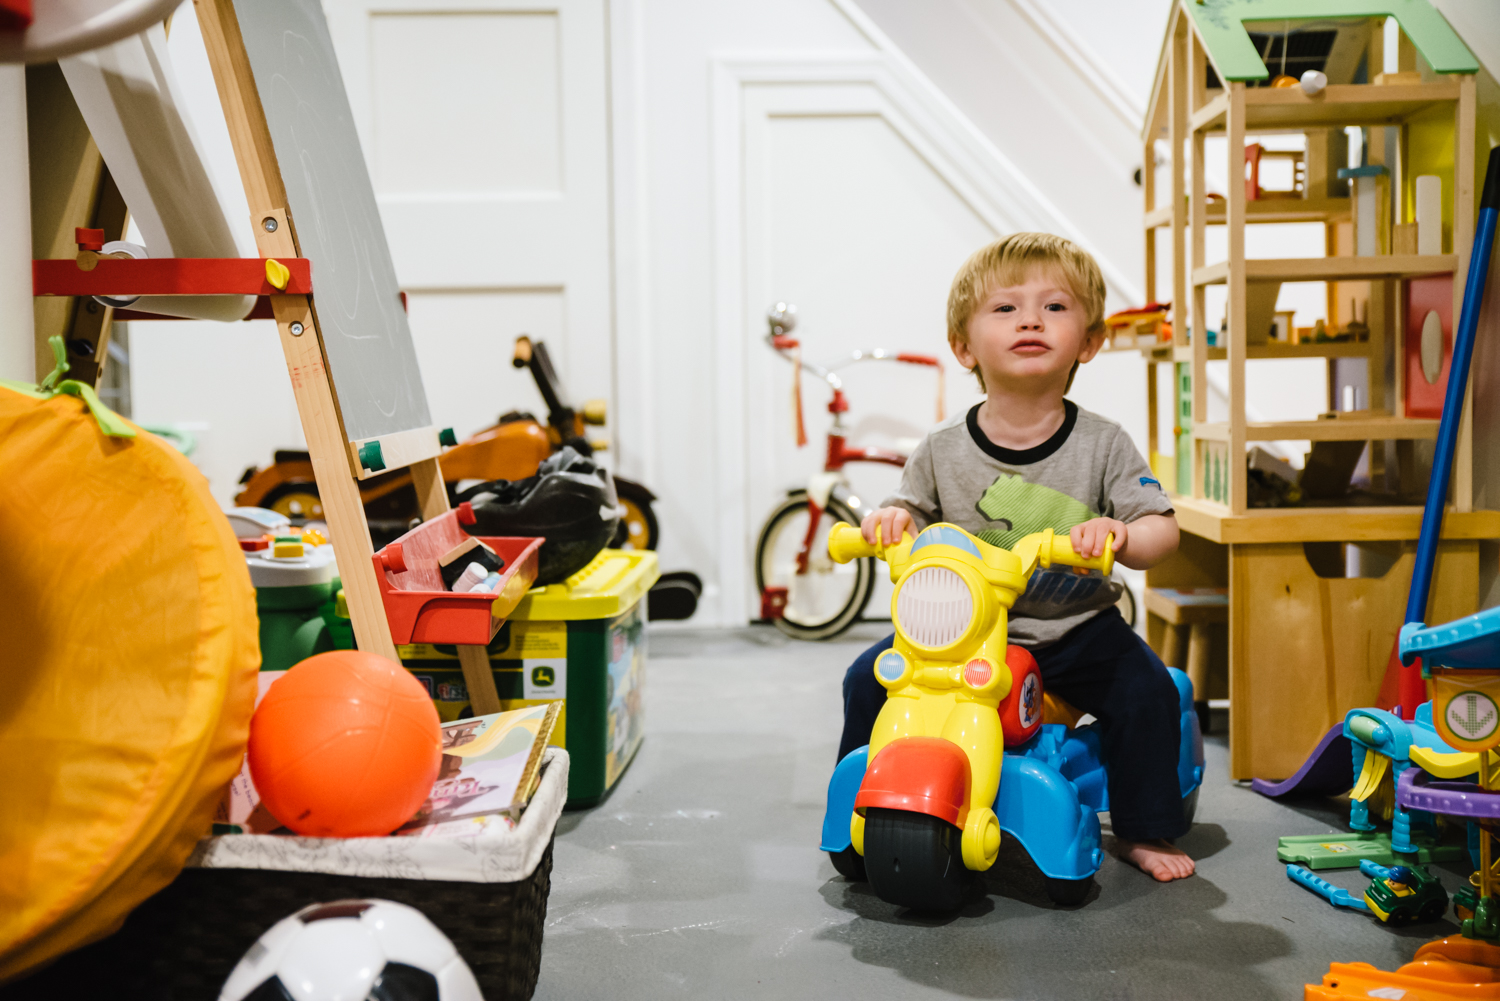 boy-on-motorcycle-toy-francesca-russell-photography-and-films-long-island-family-photographer.jpg